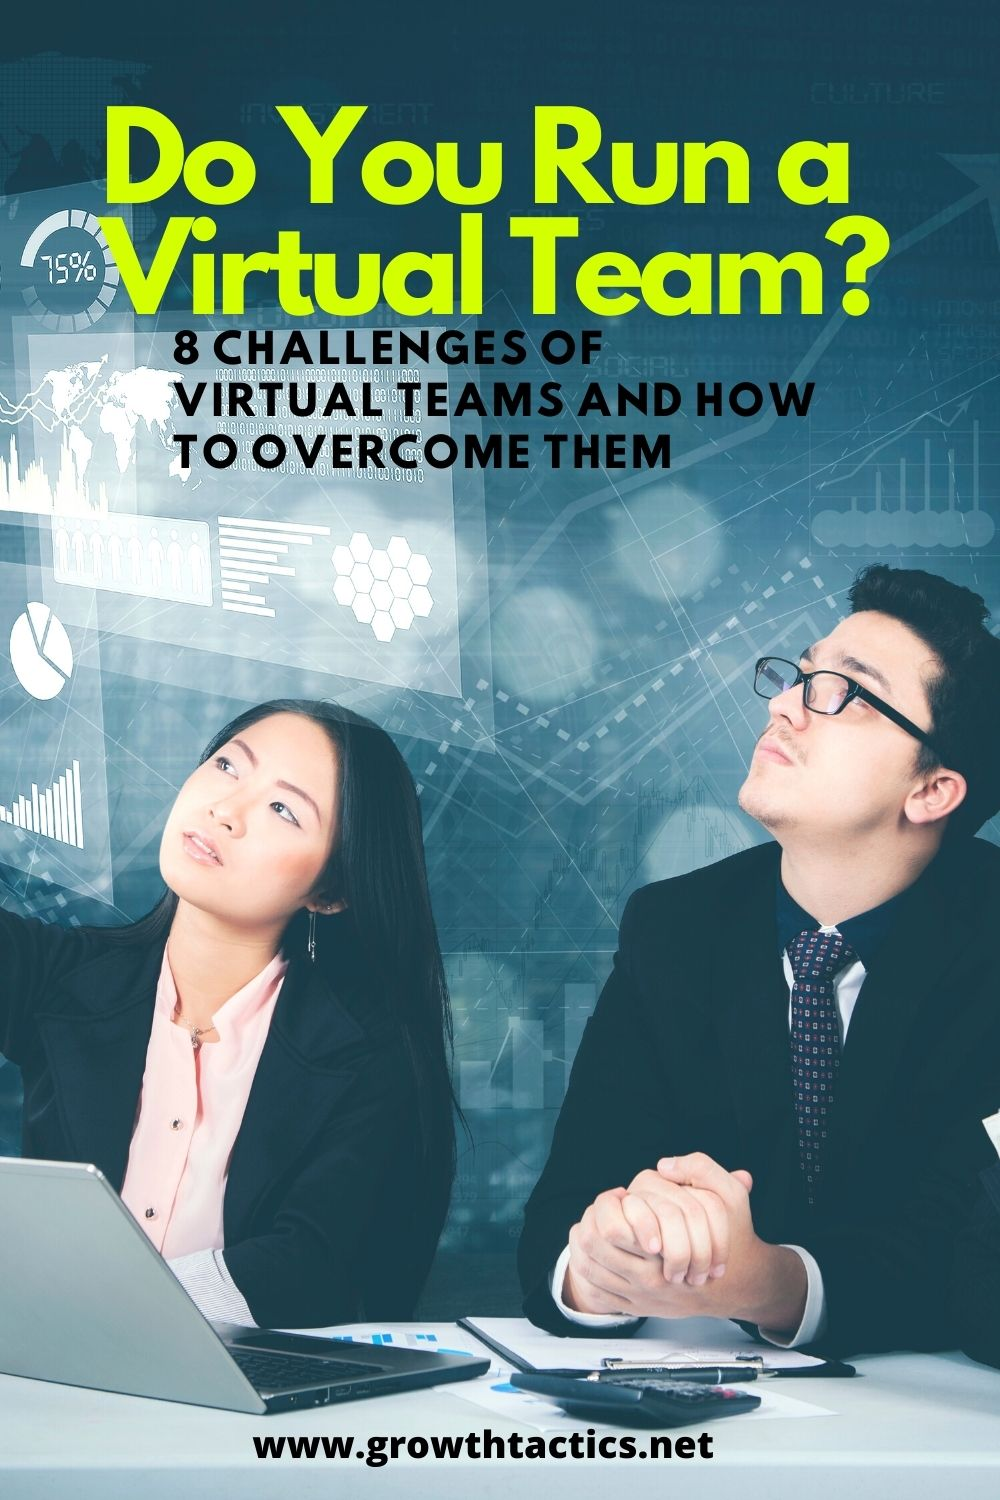 Pinterest image for 8 Challenges of Virtual Teams and How to Overcome Them.